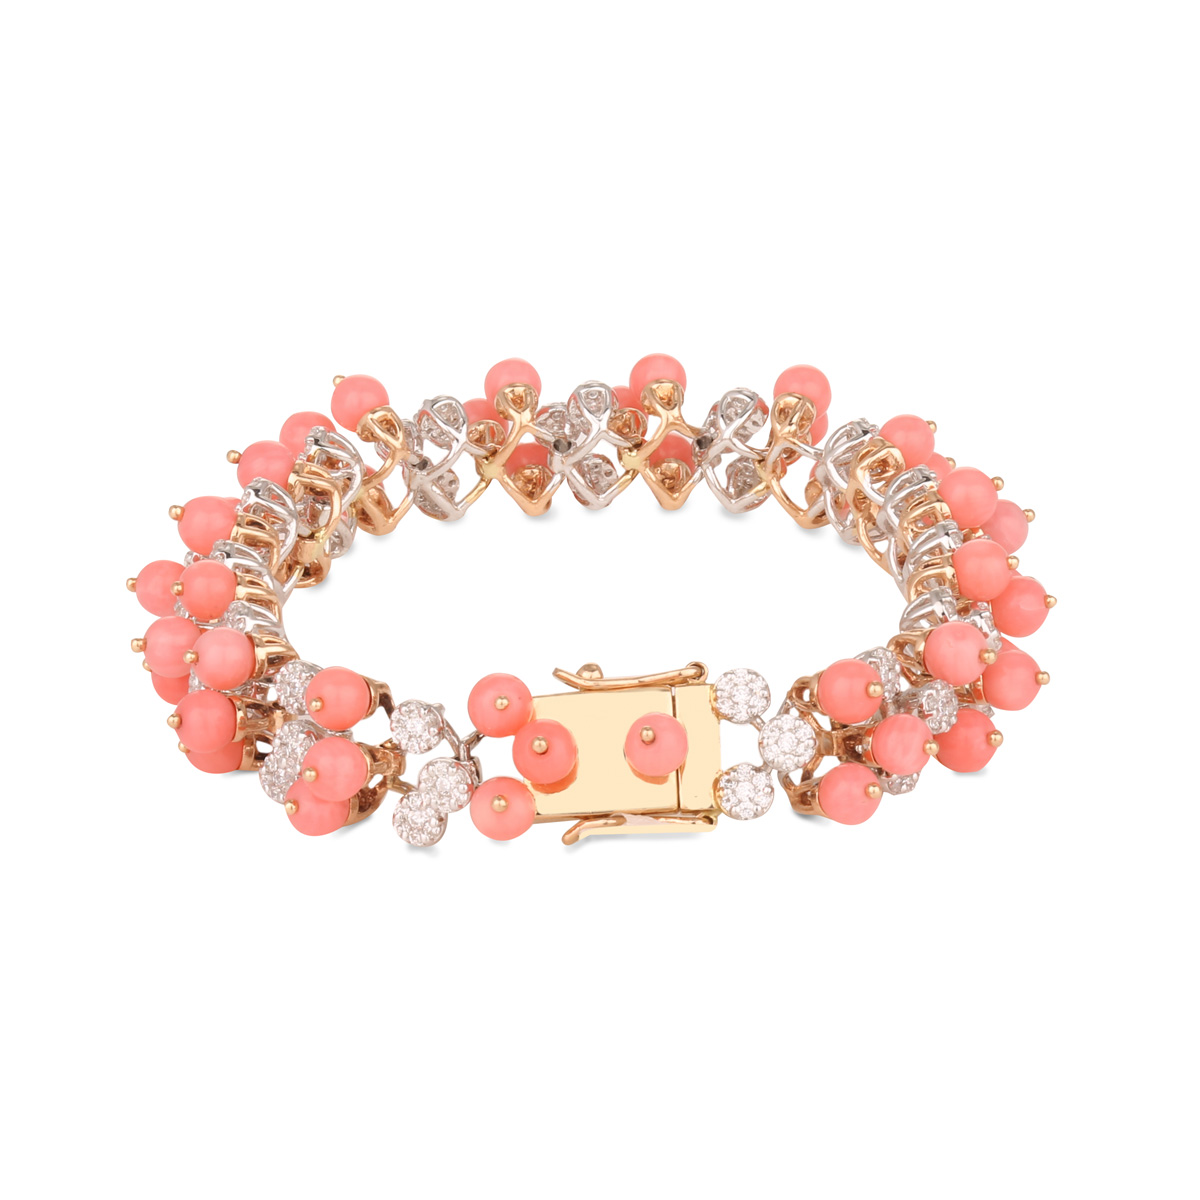 Aesthetic Fancy Bracelet